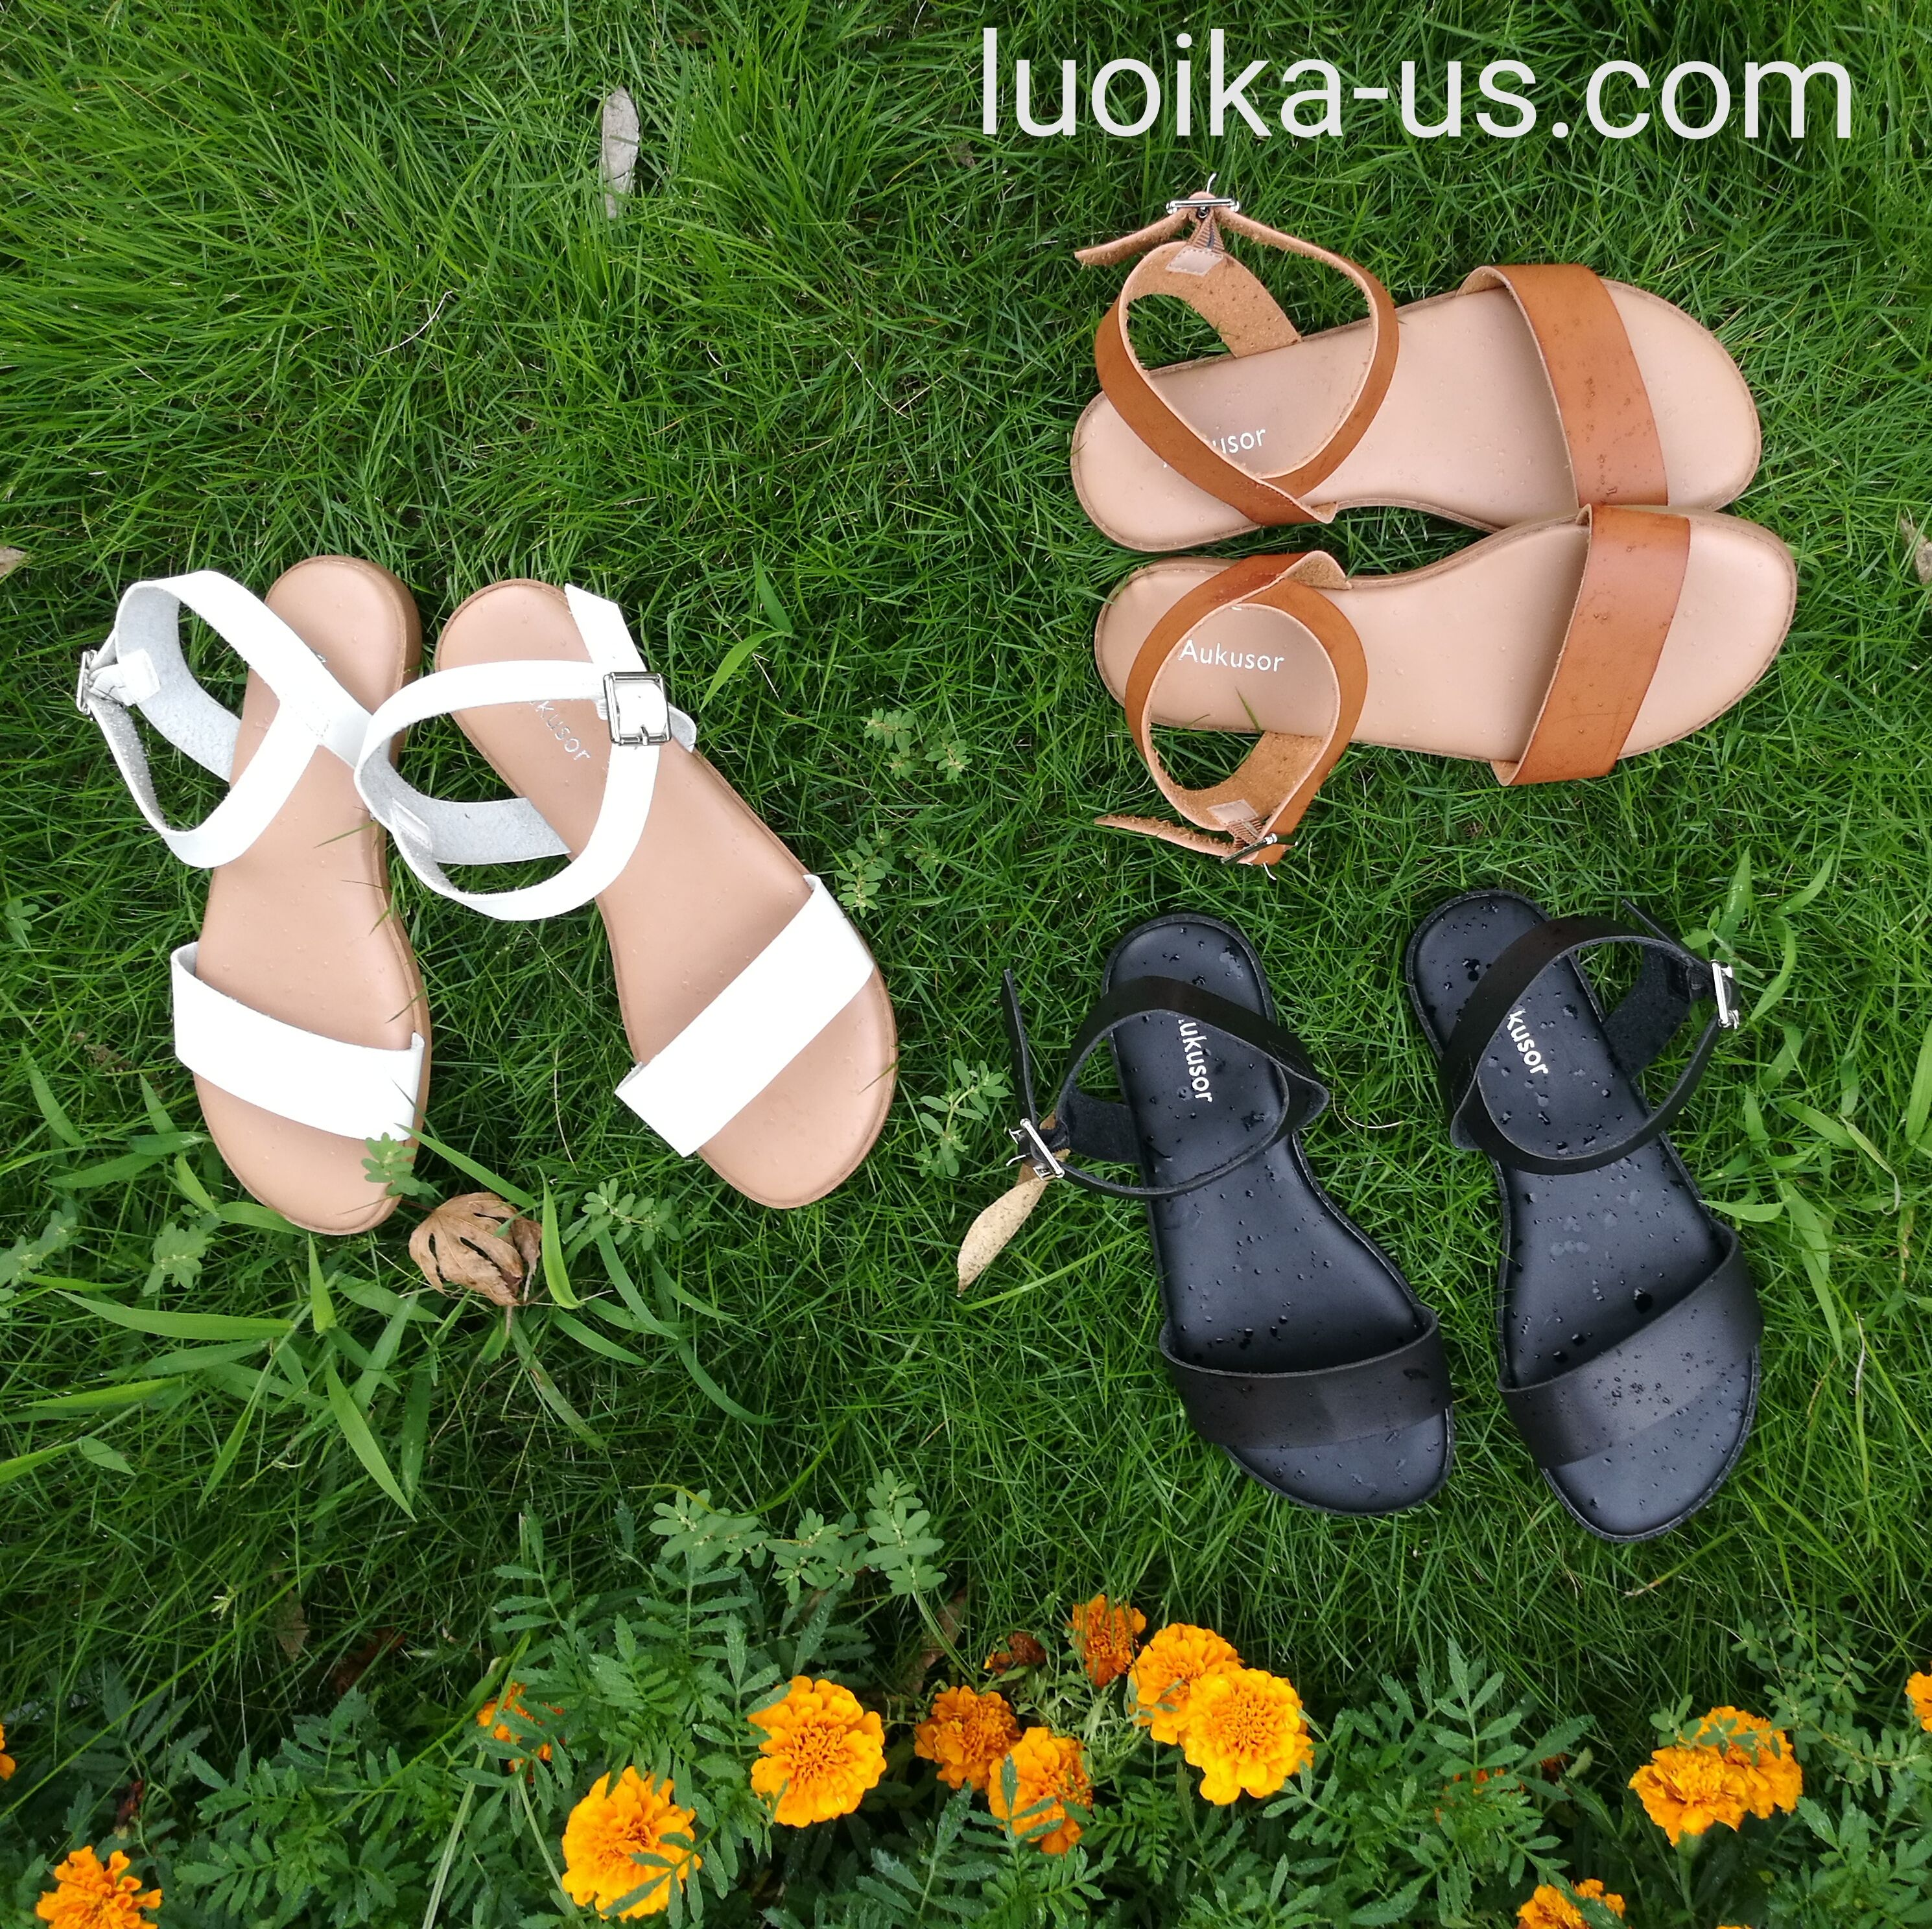 cde9aec402d Aukusor Women s Wide Width Flat Sandals - Comfortable Open Toe Ankle Strap  Flexible Casual Summer Shoes Faux leather upper